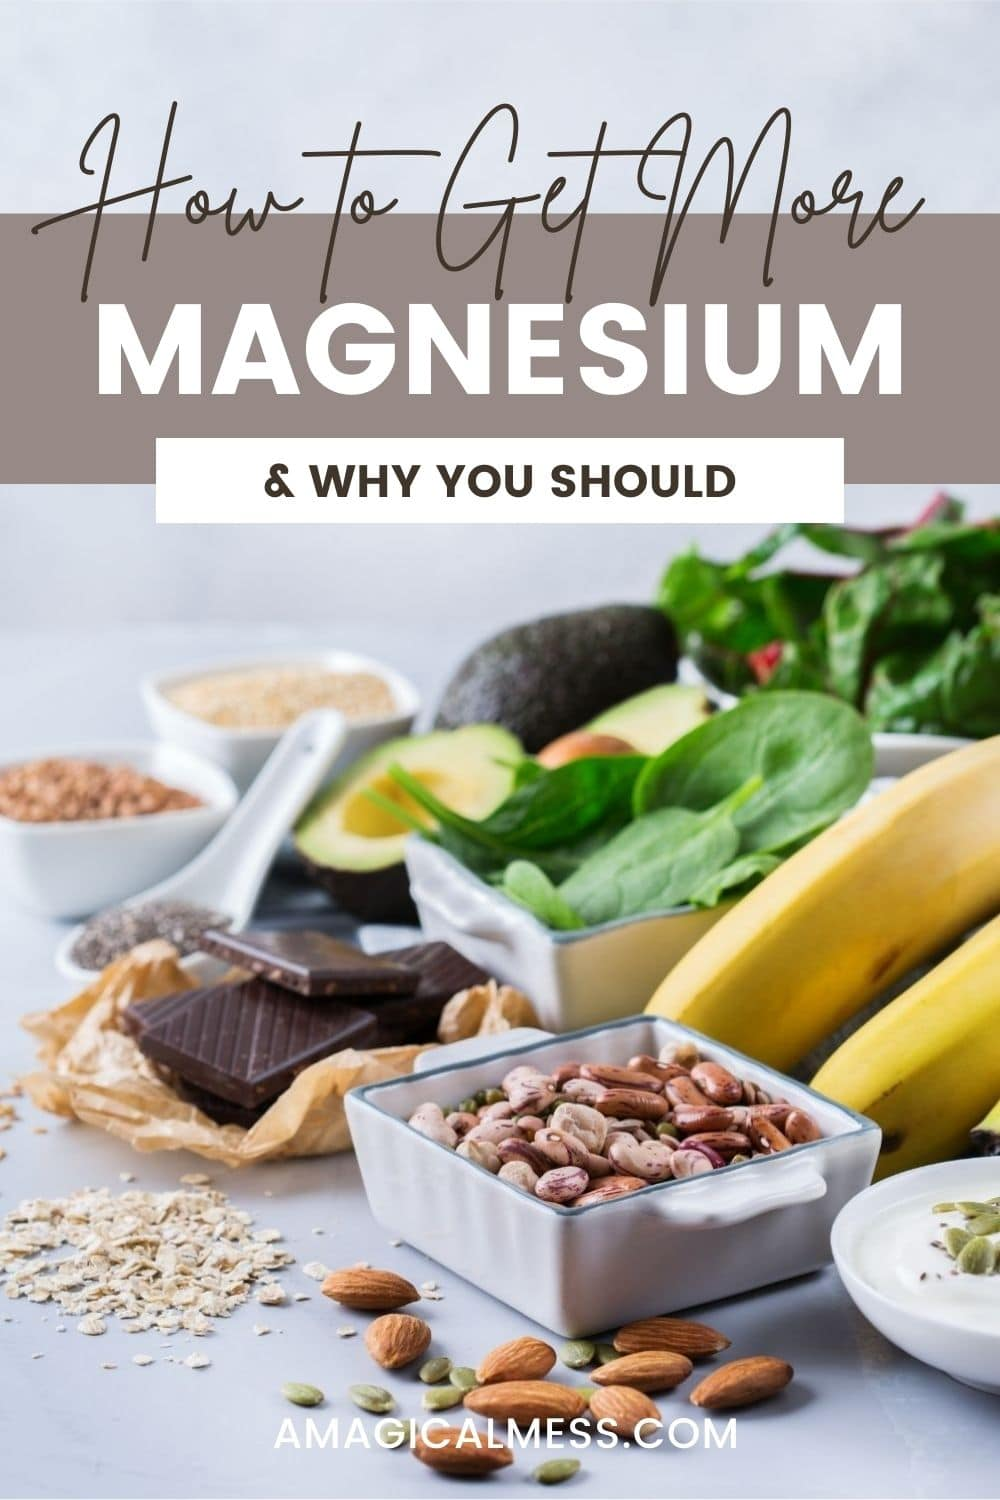 bananas, greens, beans, and other magnesium rich foods